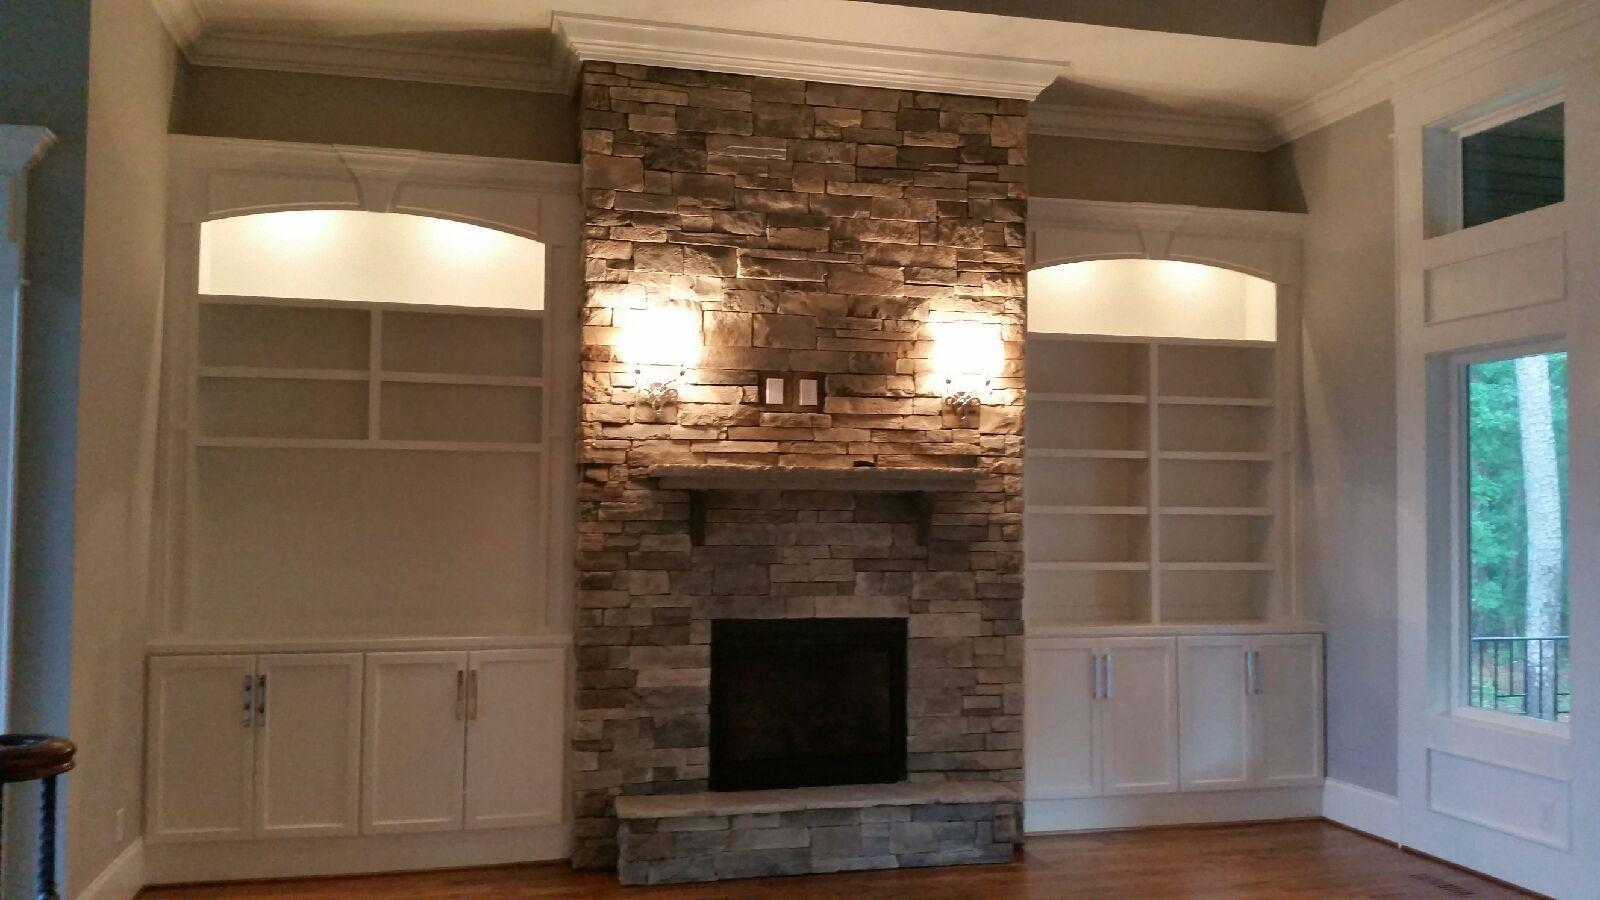 Fireplace Built-Ins with Arches, Keystone and Applied Panel Detail, Shaker Doors, Adjustable Shelves, TV Opening, and Crown